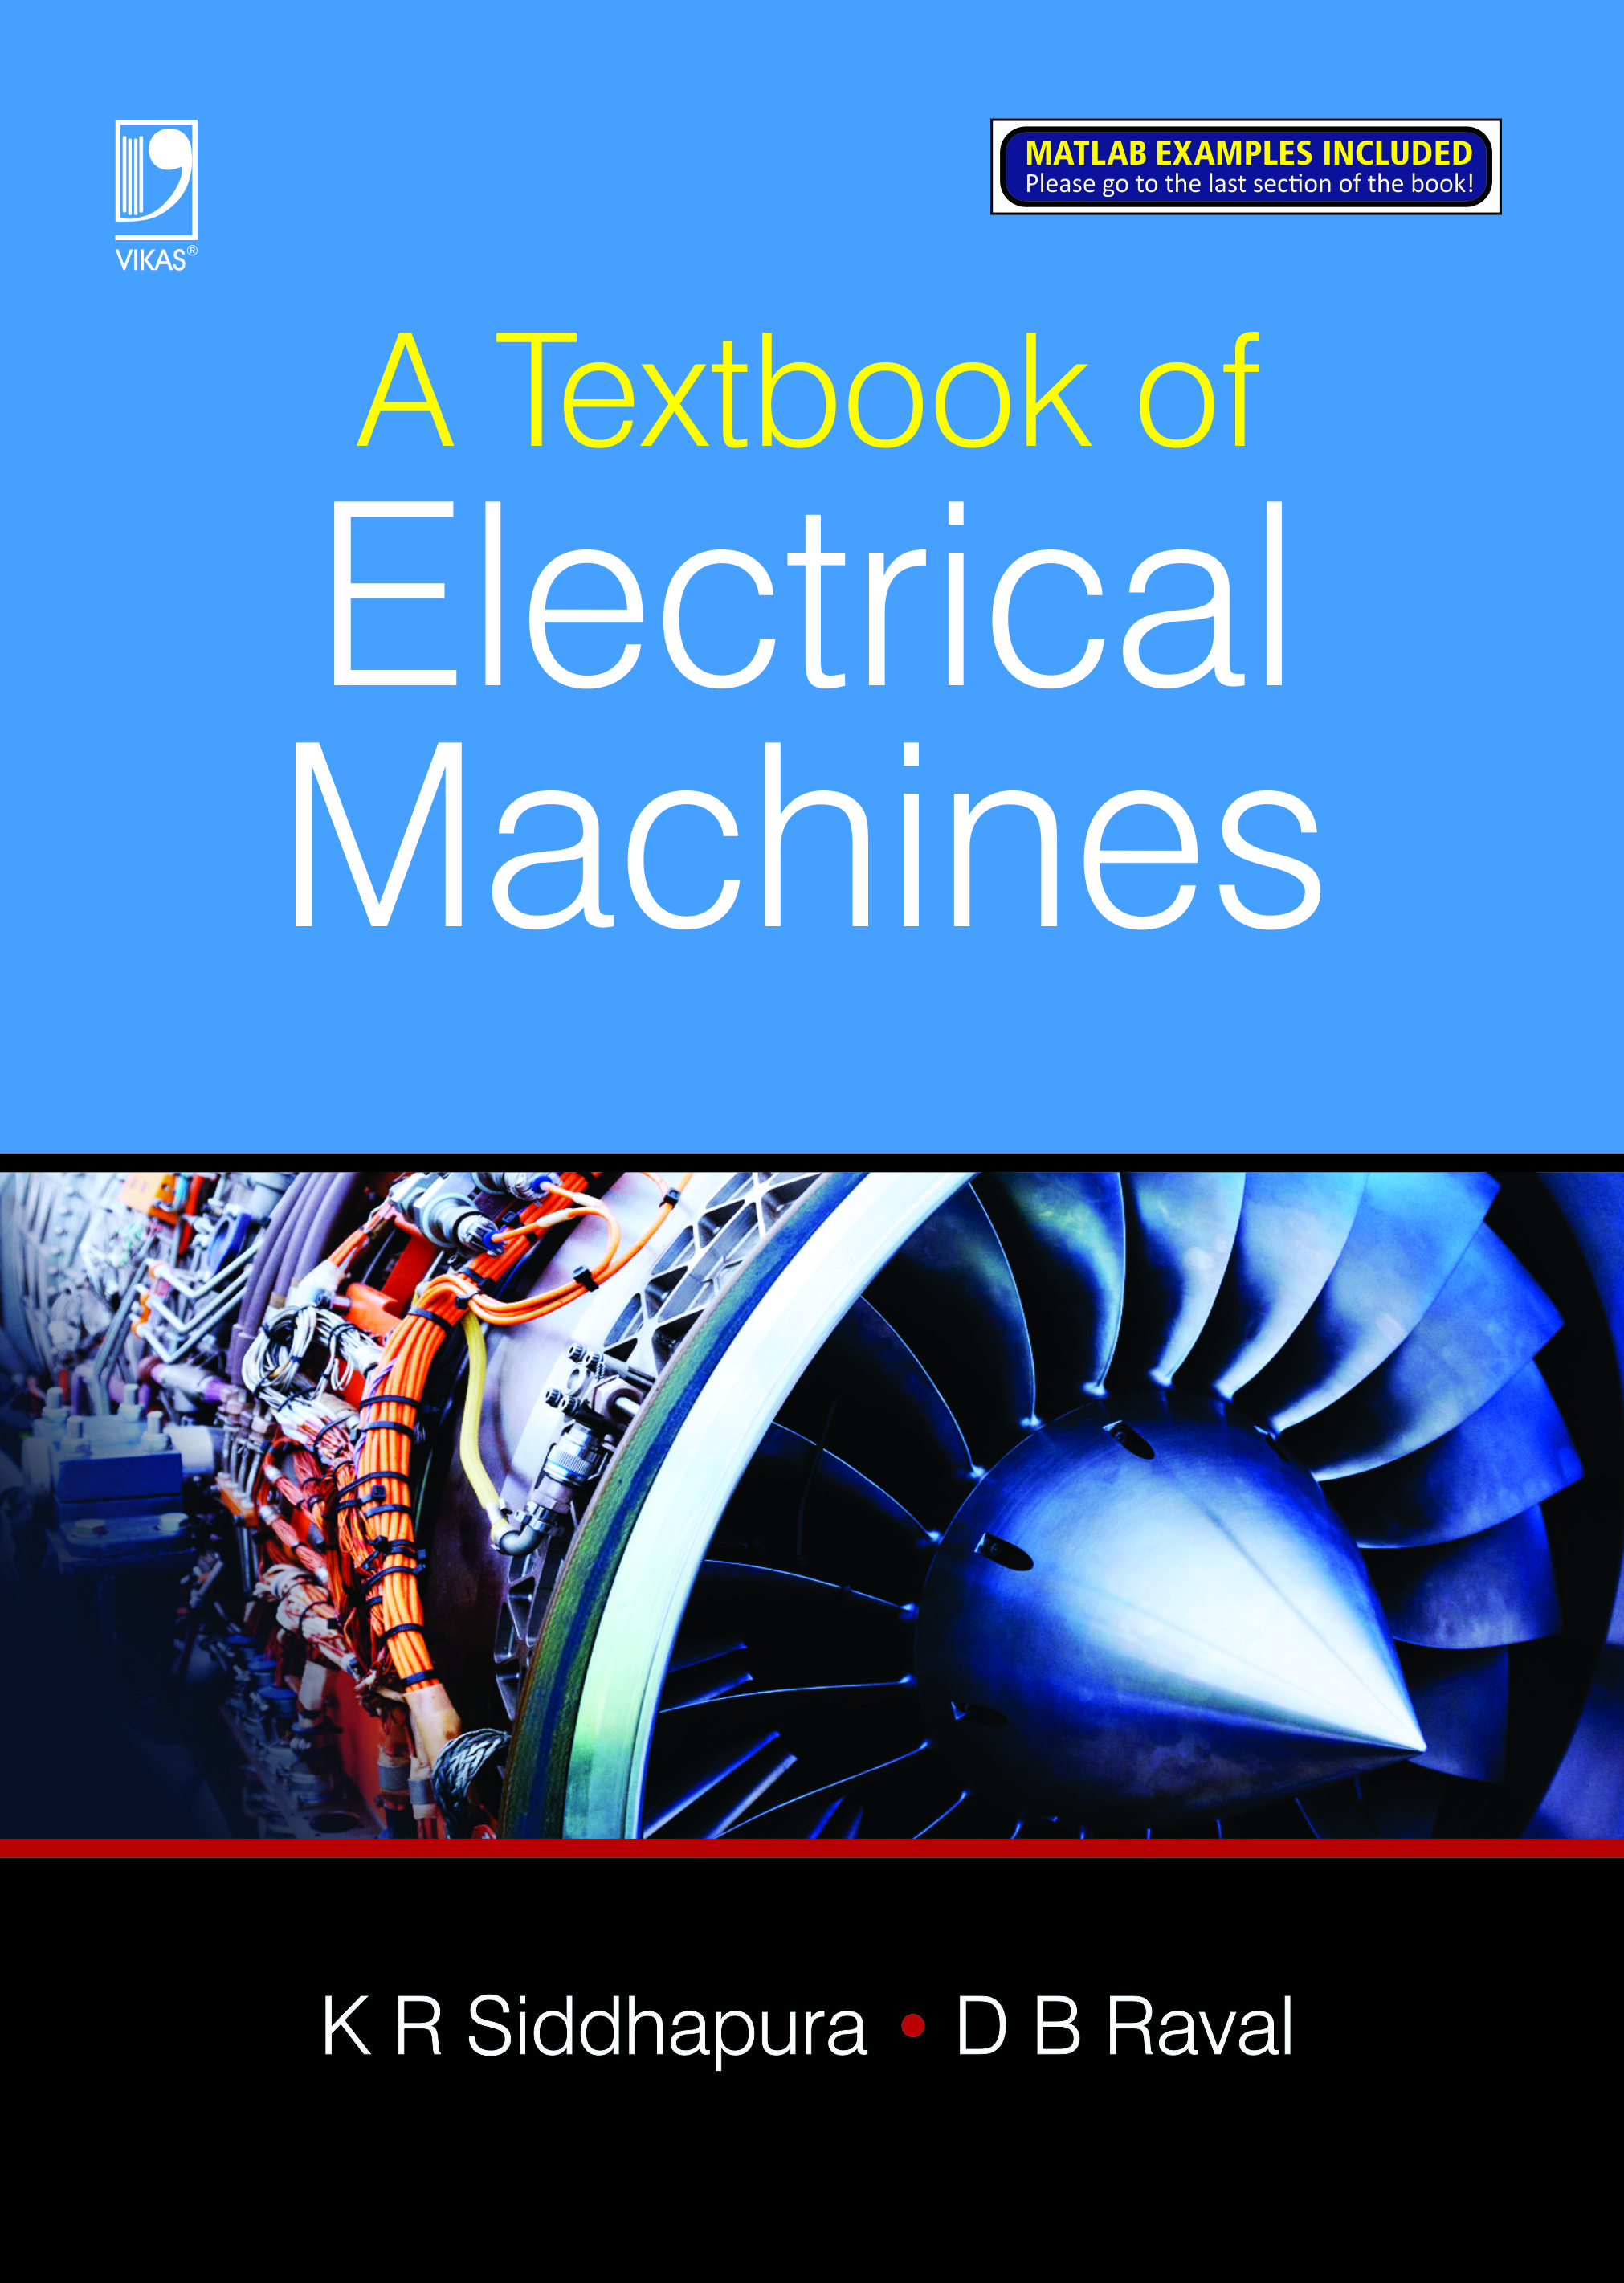 A Textbook of Electrical Machines by  K R Siddhapura